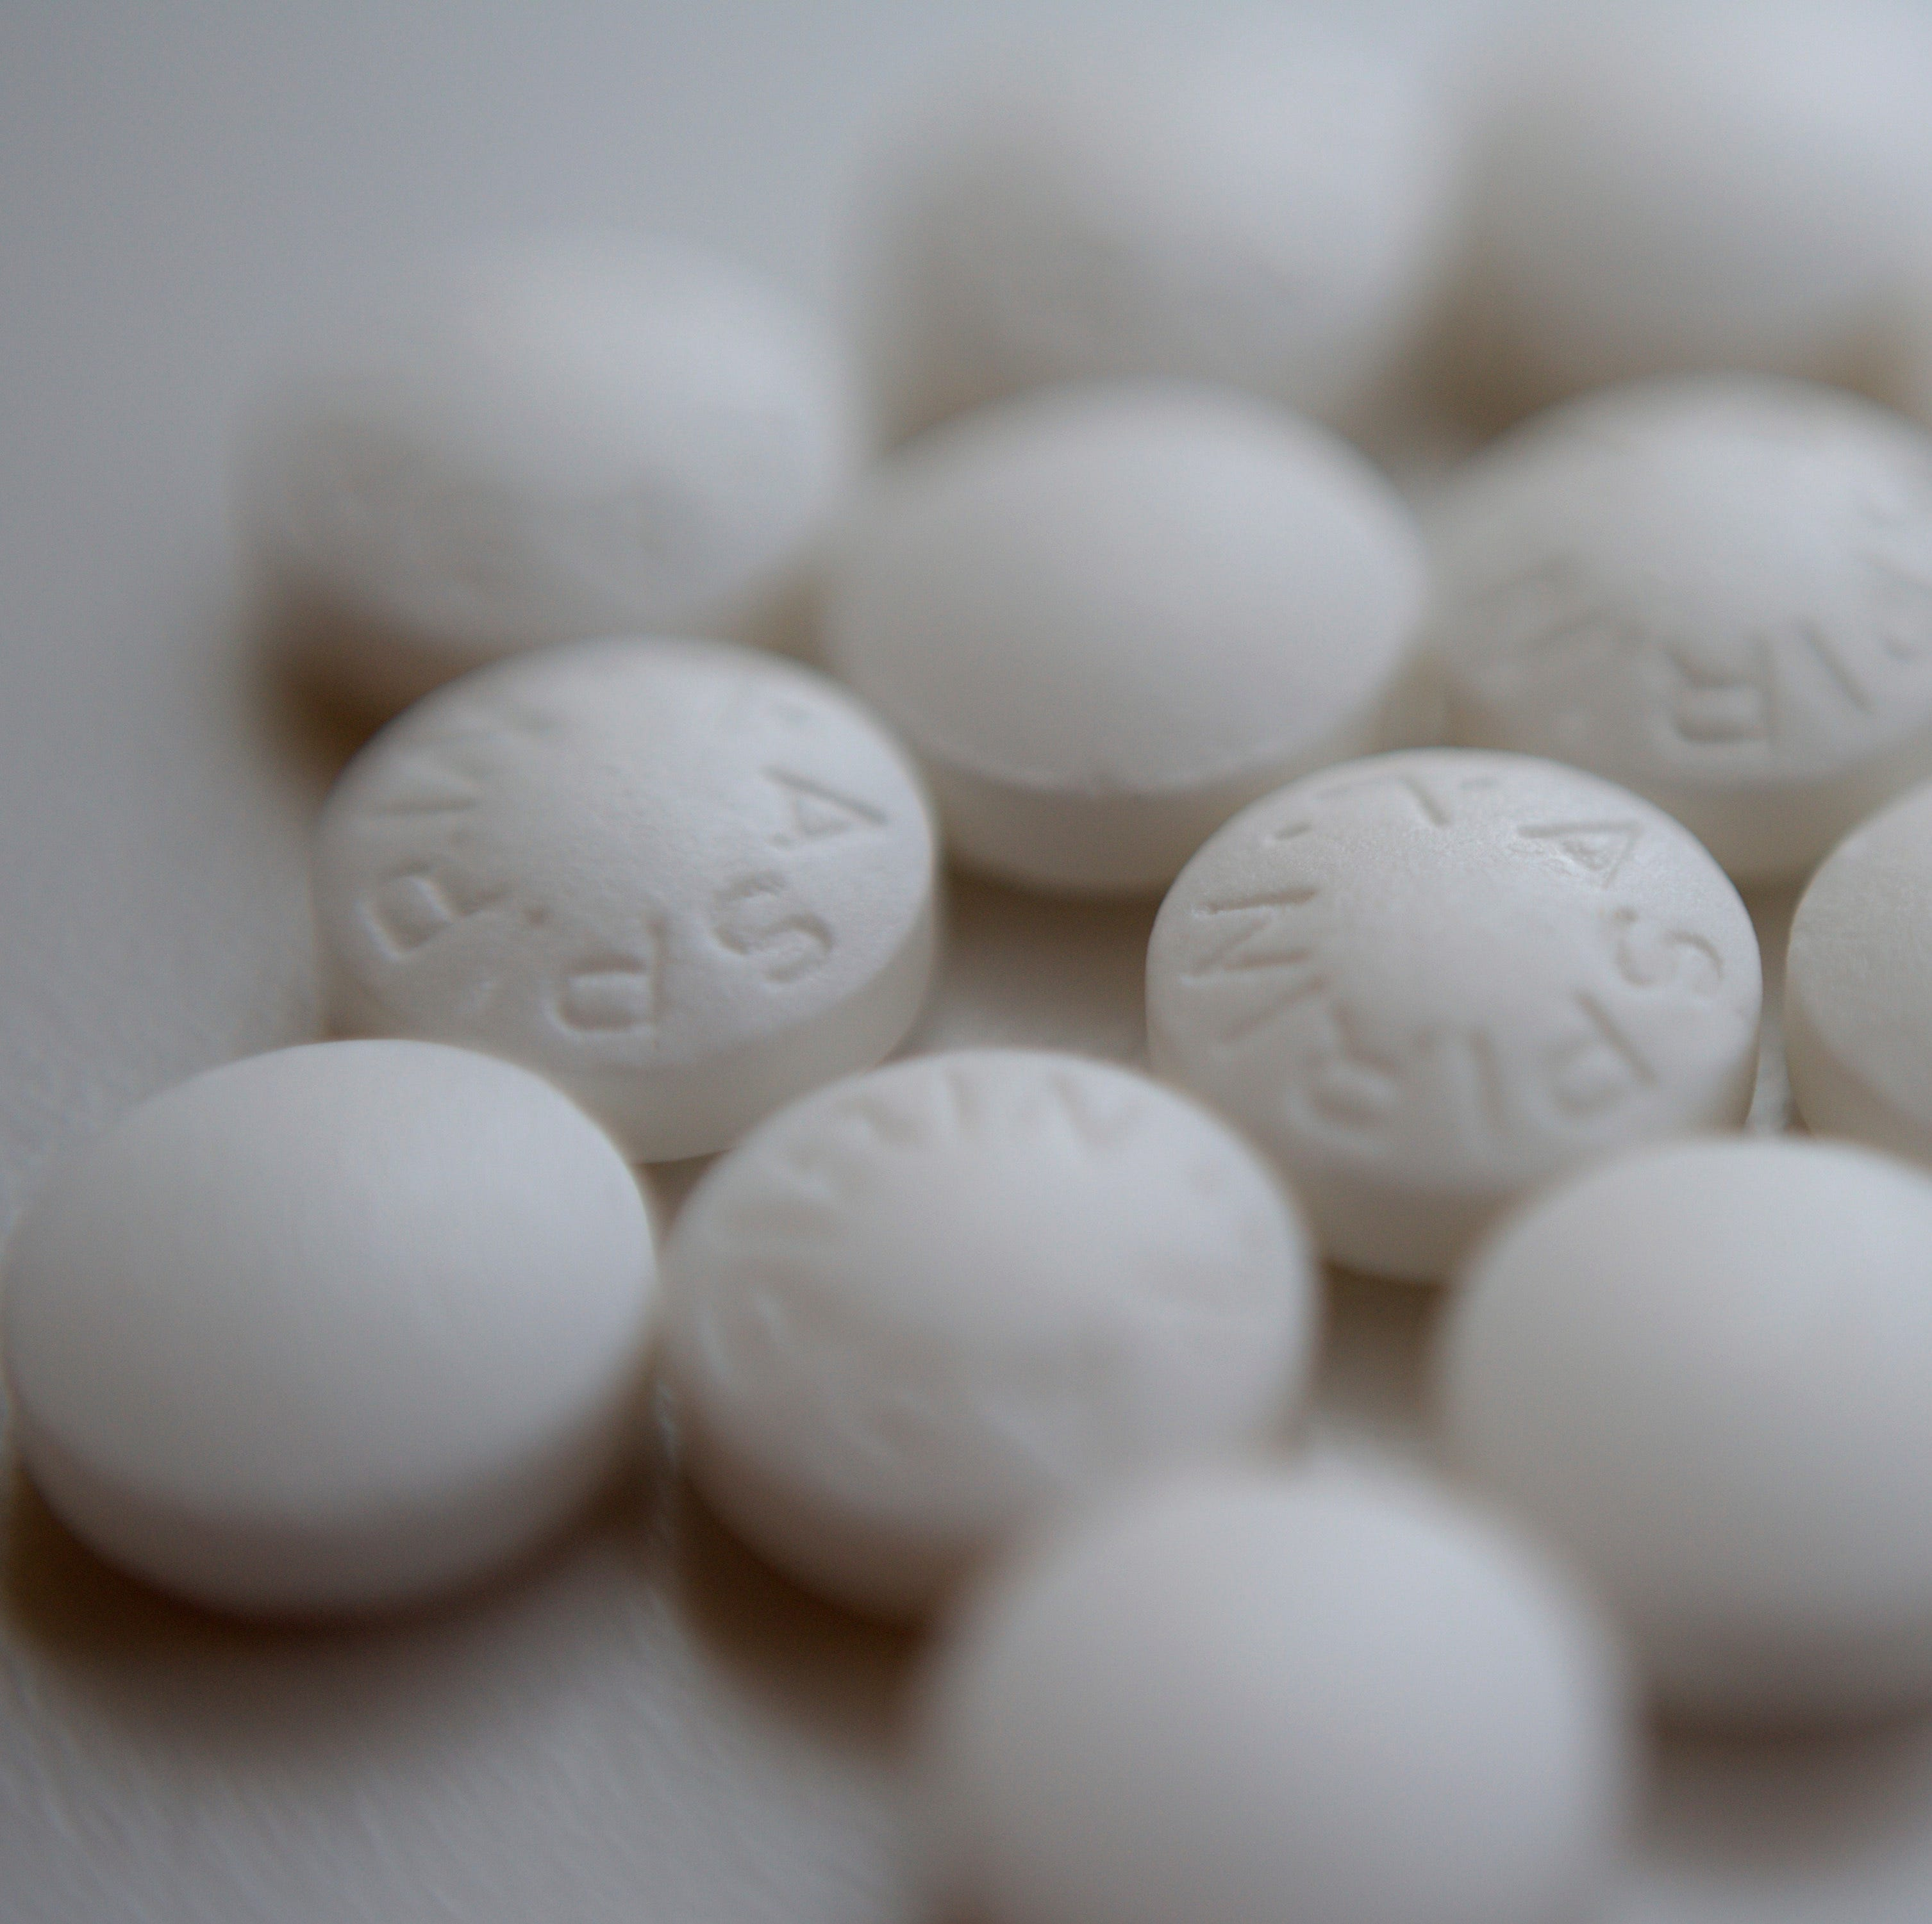 New guidelines change course over recommendation of daily aspirin to prevent heart attacks, strokes